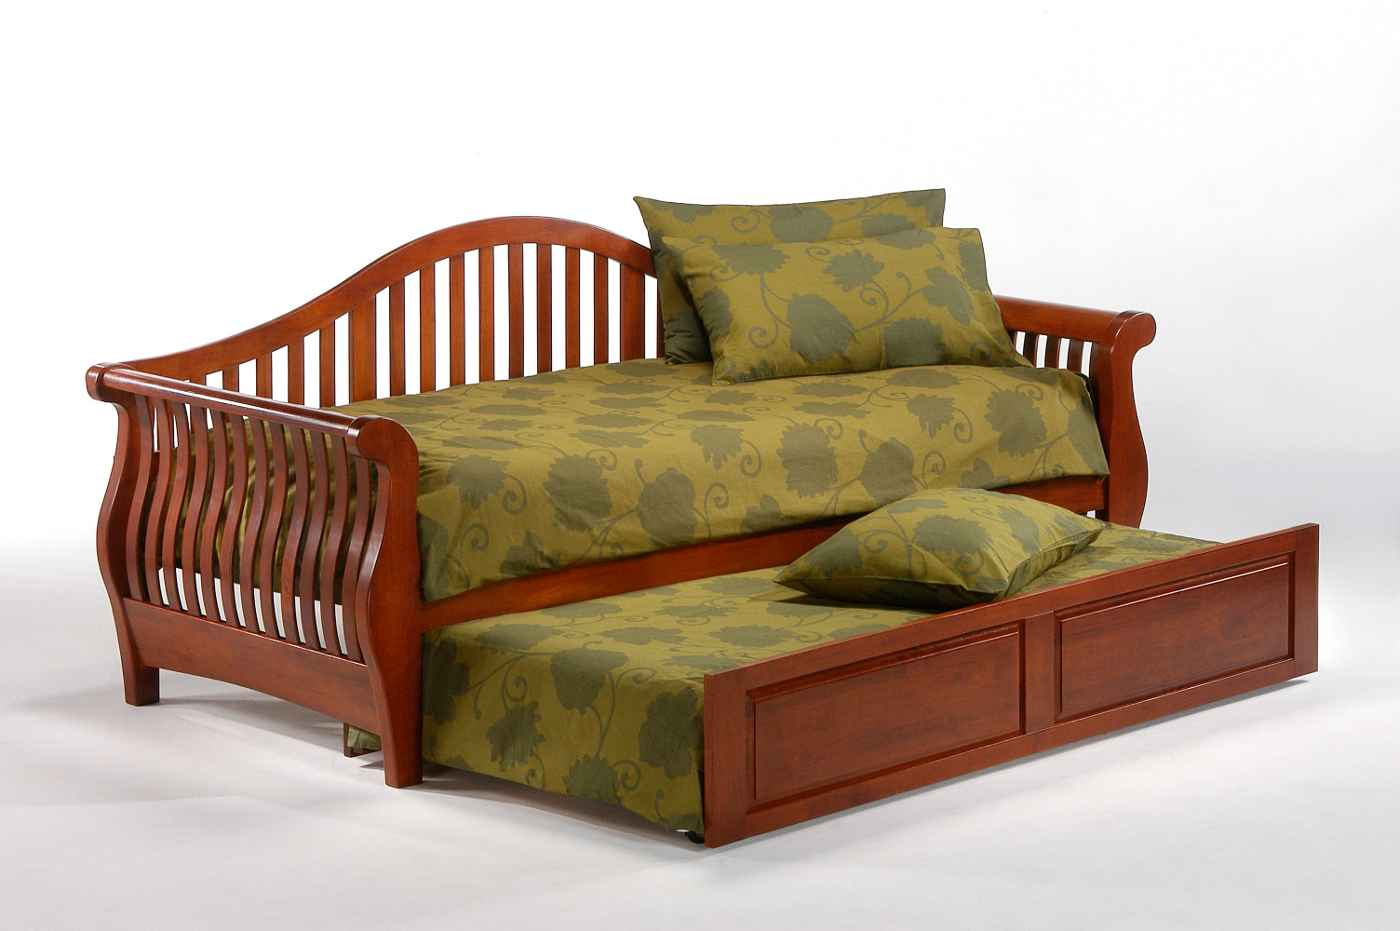 Alluring Furniture in the Living room cheap futons for sale